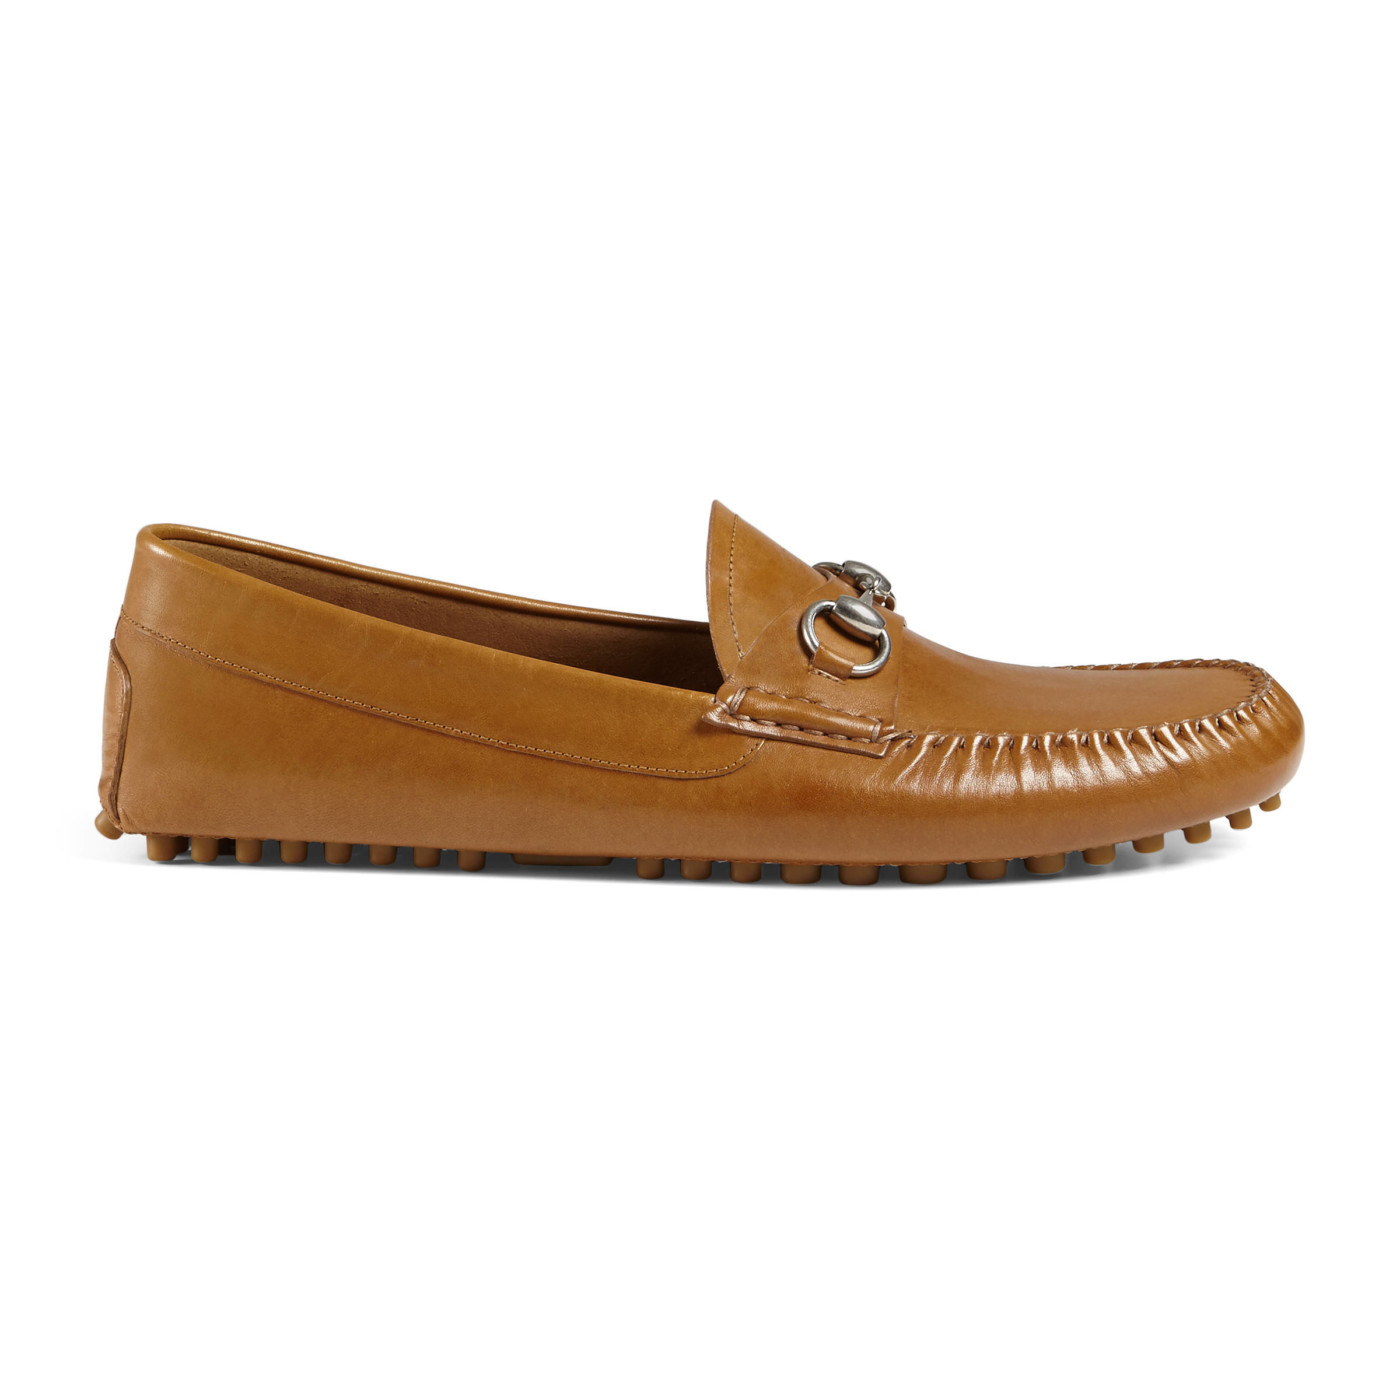 729757ec1 Gucci Men's Brown Leather Horsebit Driver Moccasin Loafers Shoes